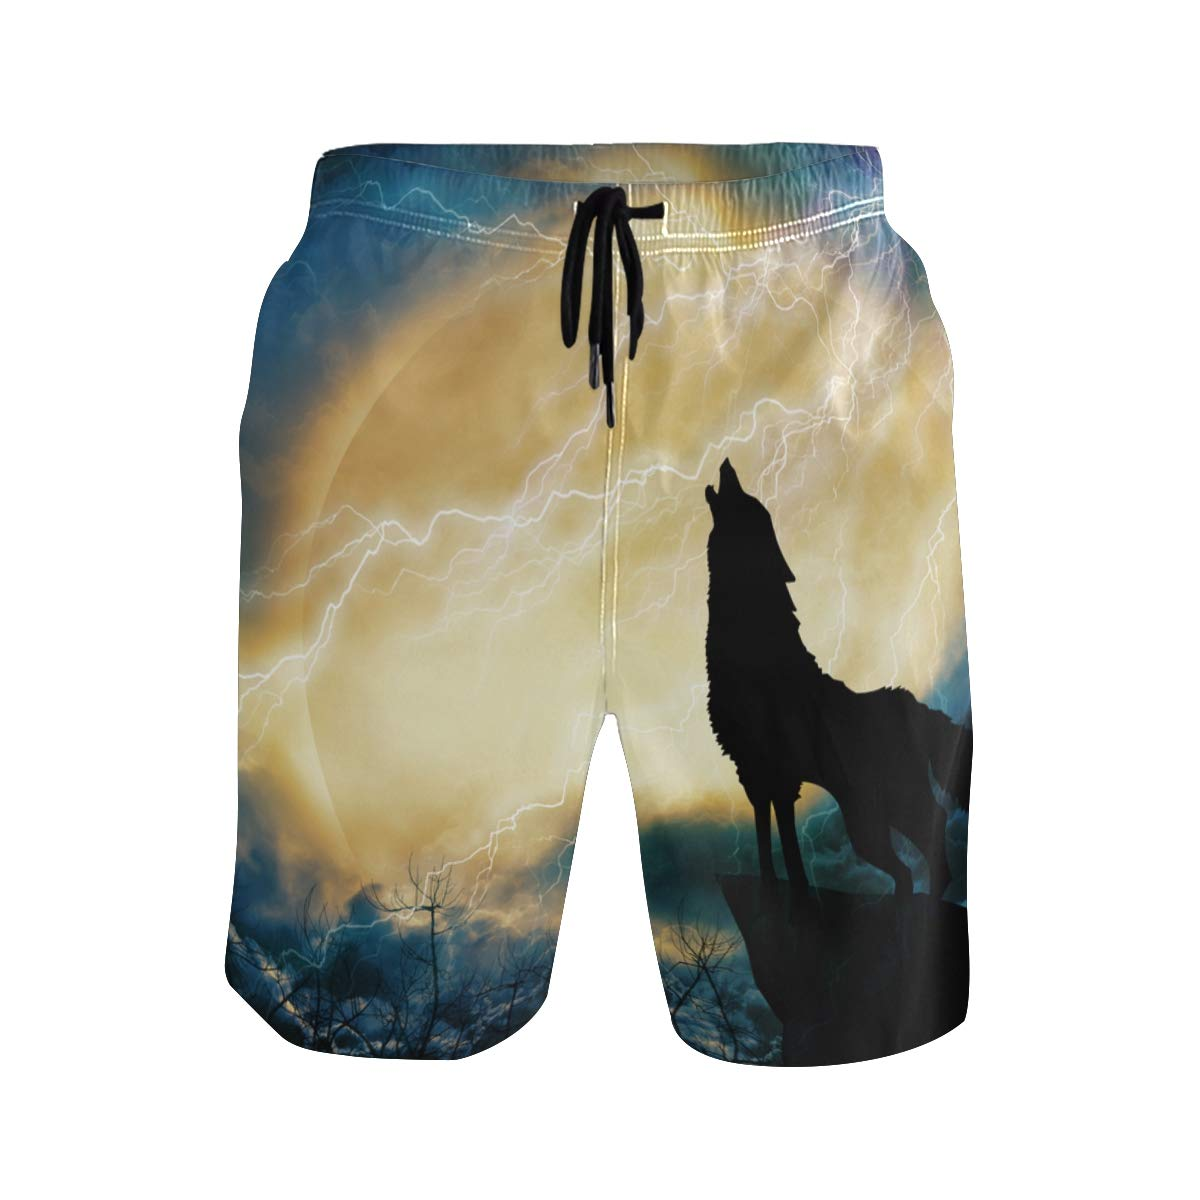 Mens Swim Trunks Quick Dry Wolf in Silhouette Howling to Thunderstorm Printed Holiday Beach Board Shorts with Mesh Lining